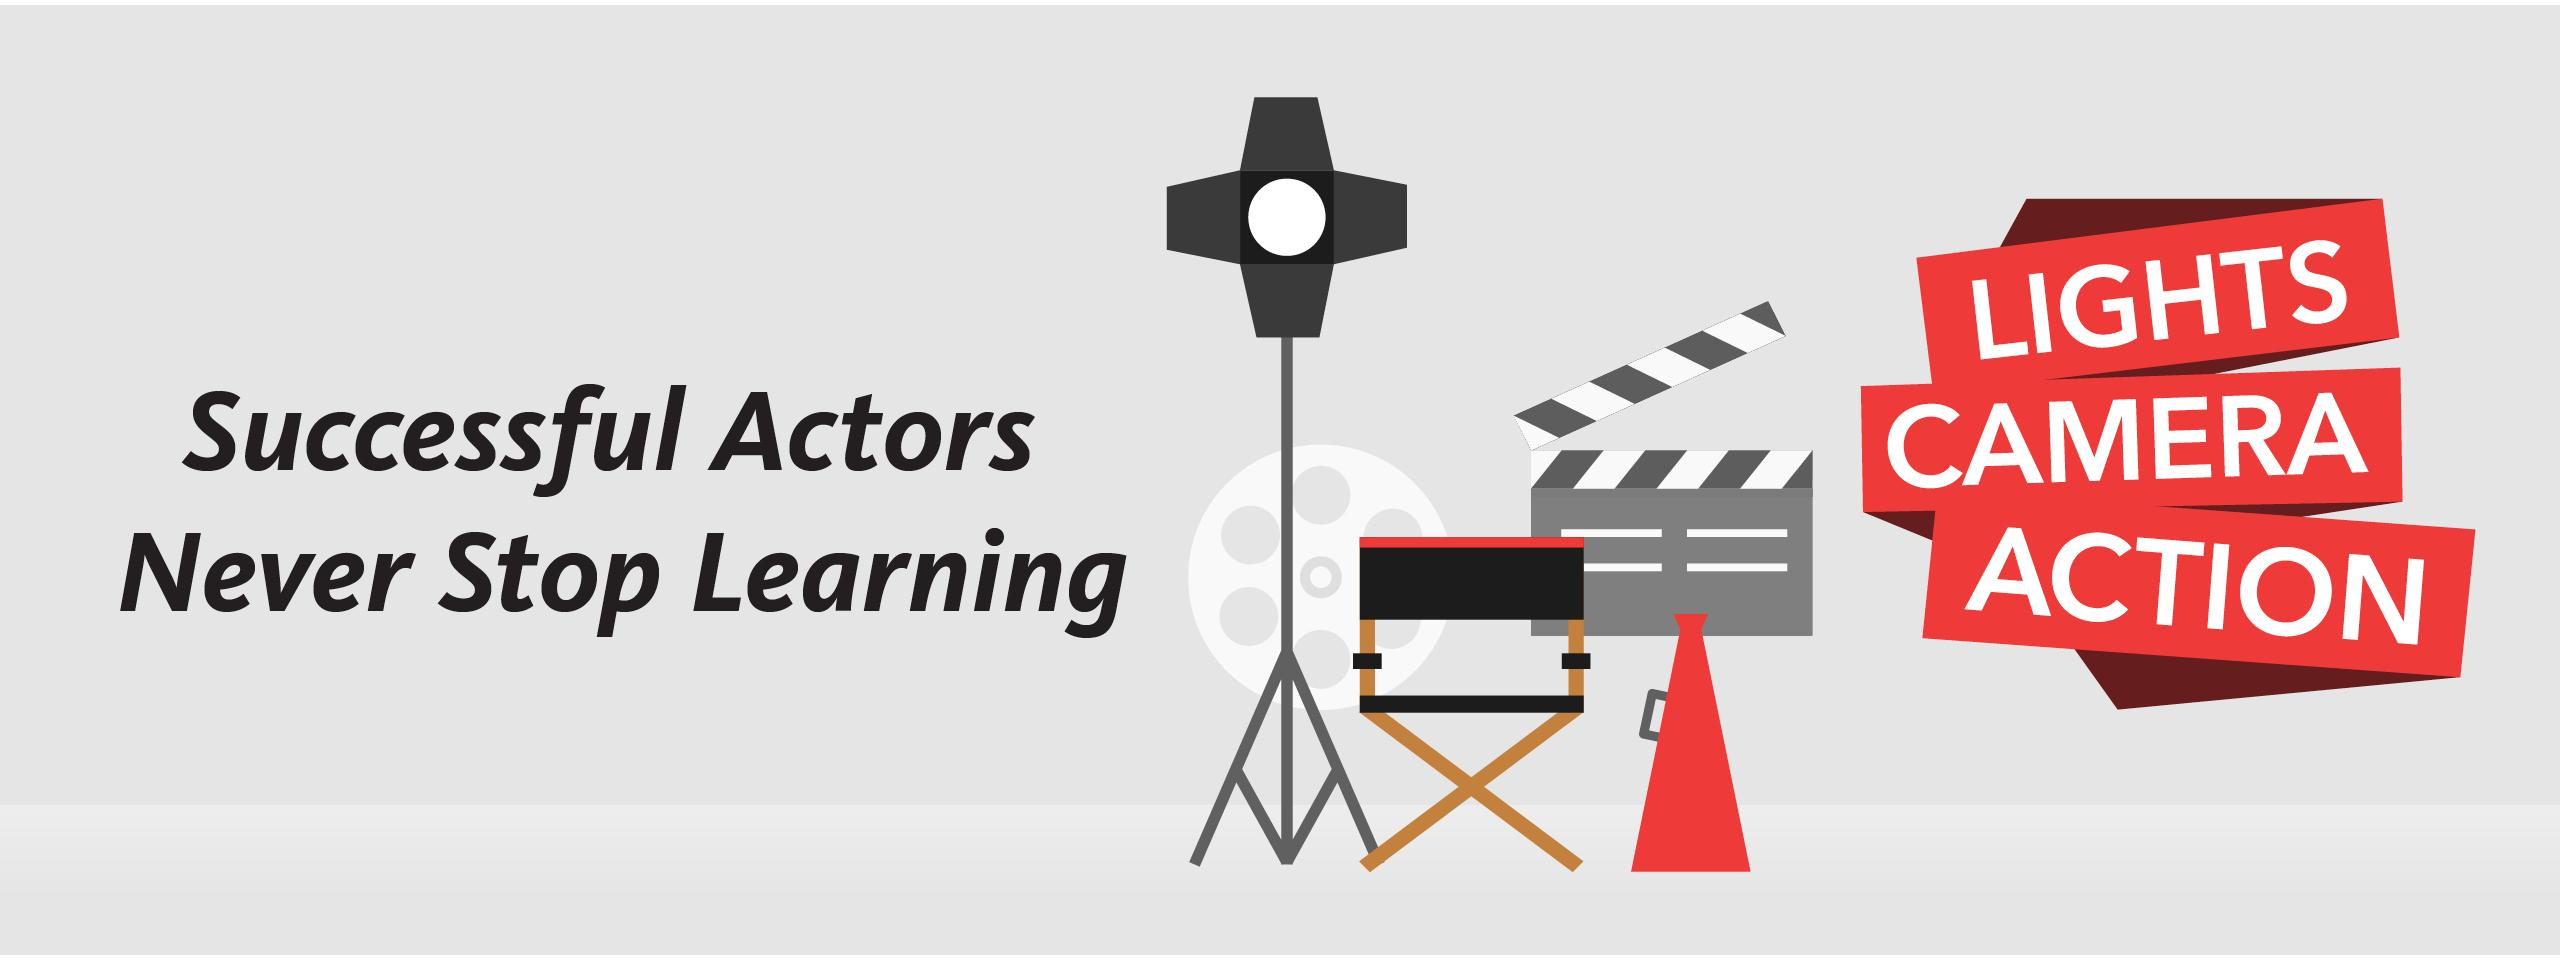 Successful Actors Never Stop Learning, Lights, Camera, Action